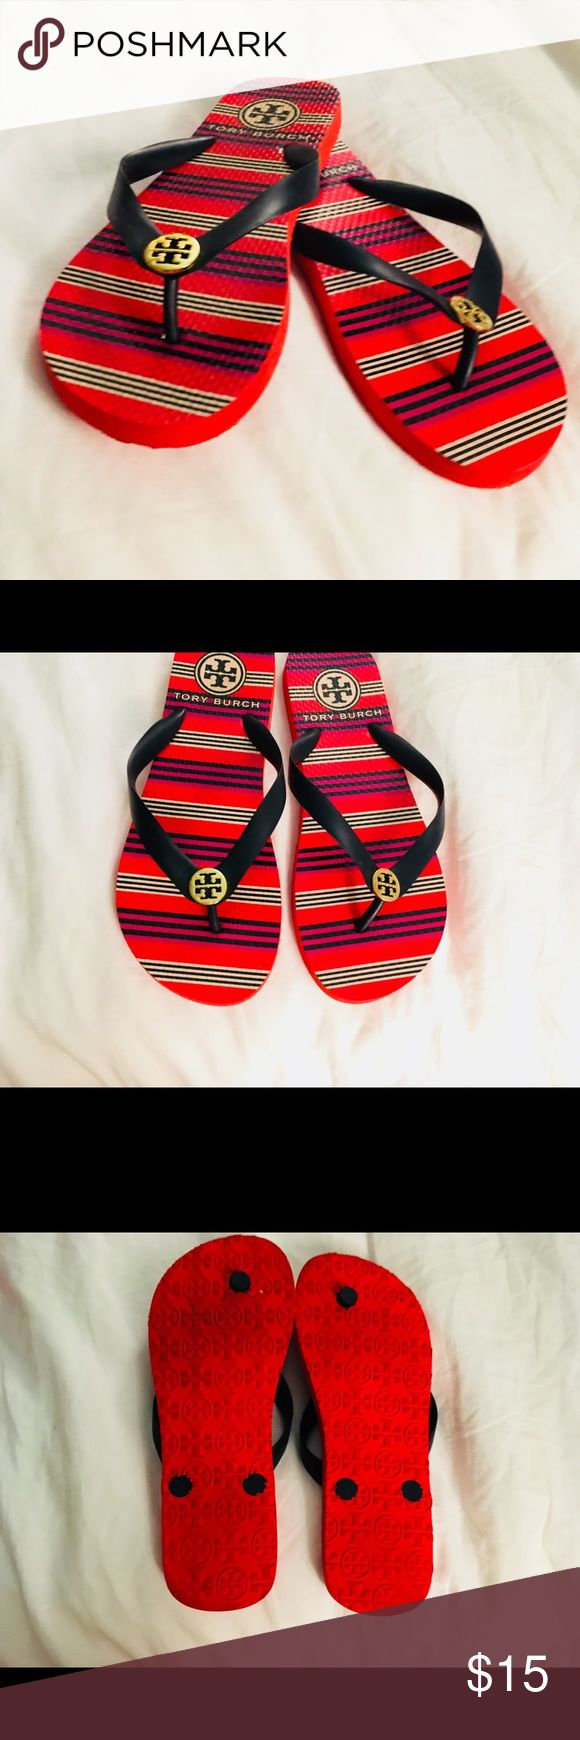 Tory Burch striped blue and red flip flops Barley used condition Tory Burch striped blue and red flip flops Tory Burch Shoes Sandals